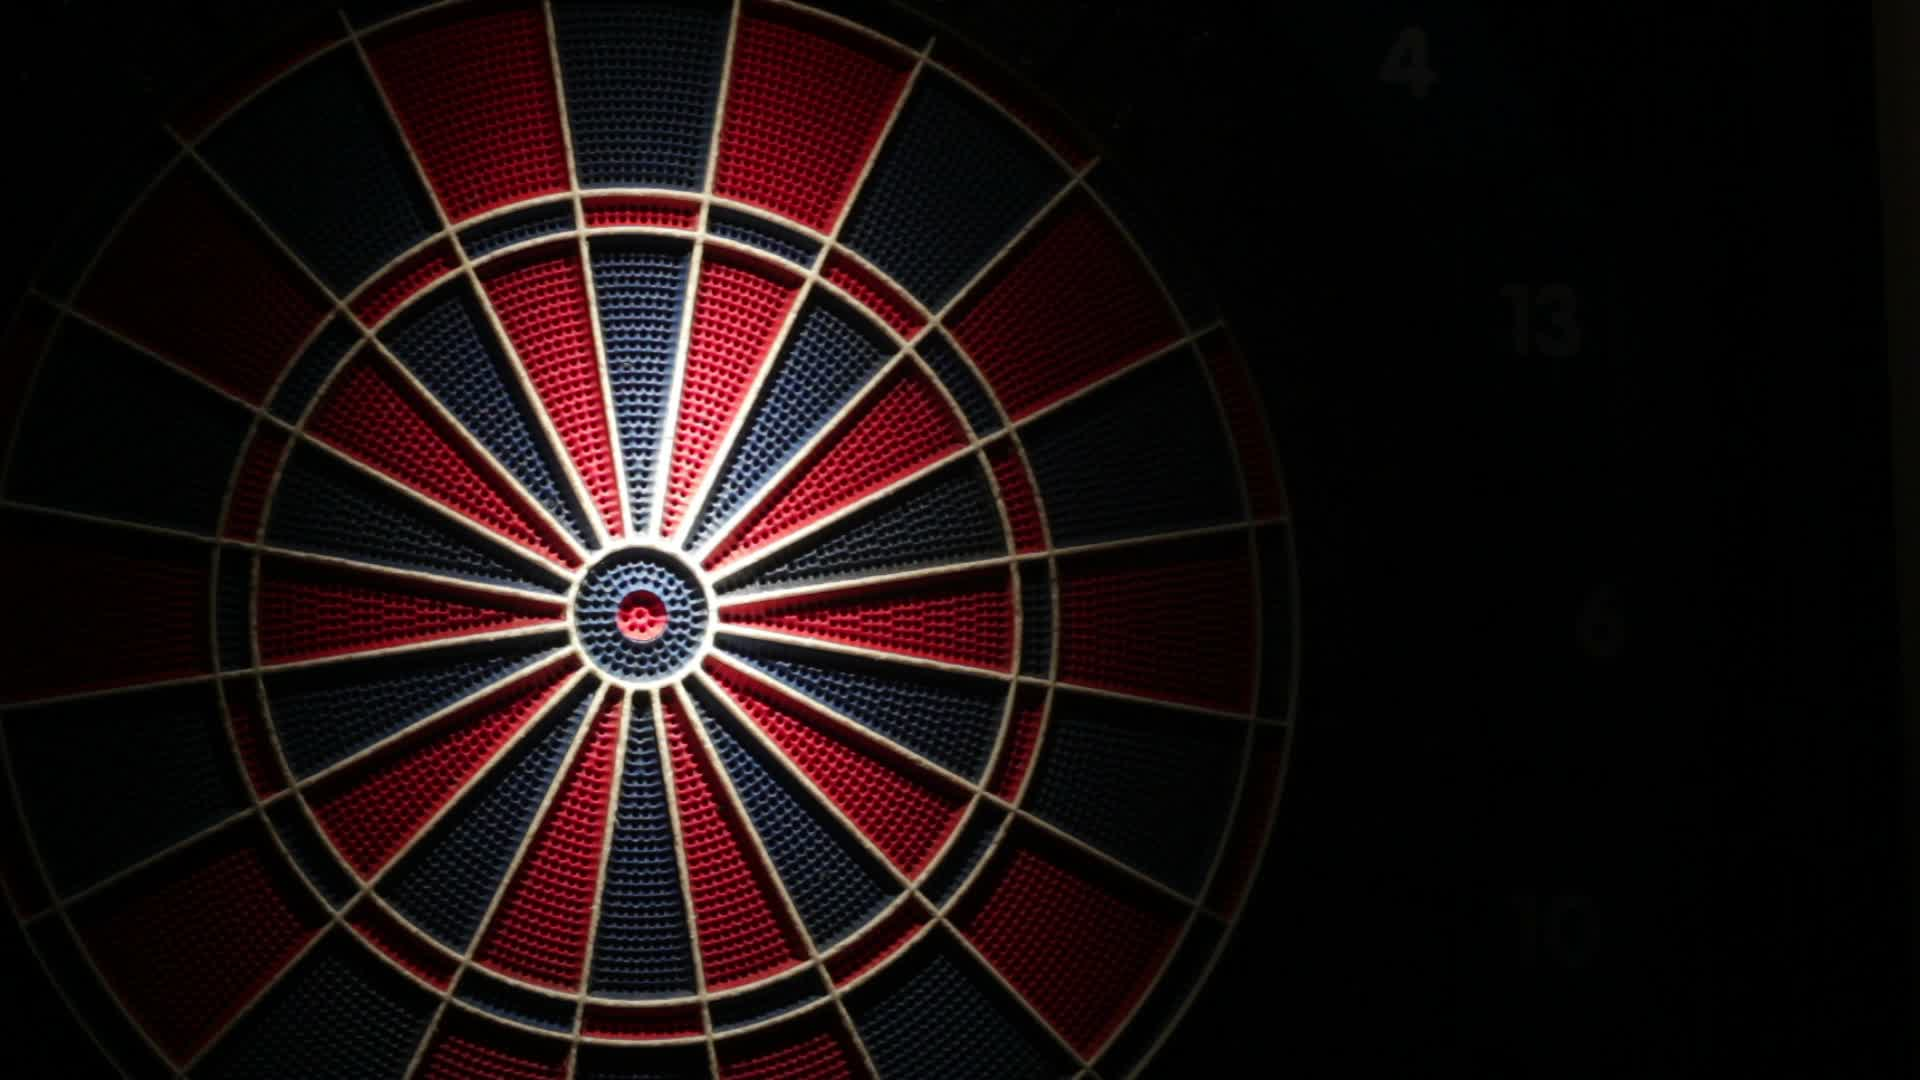 dart board game widescreen desktop wallpaper 1301